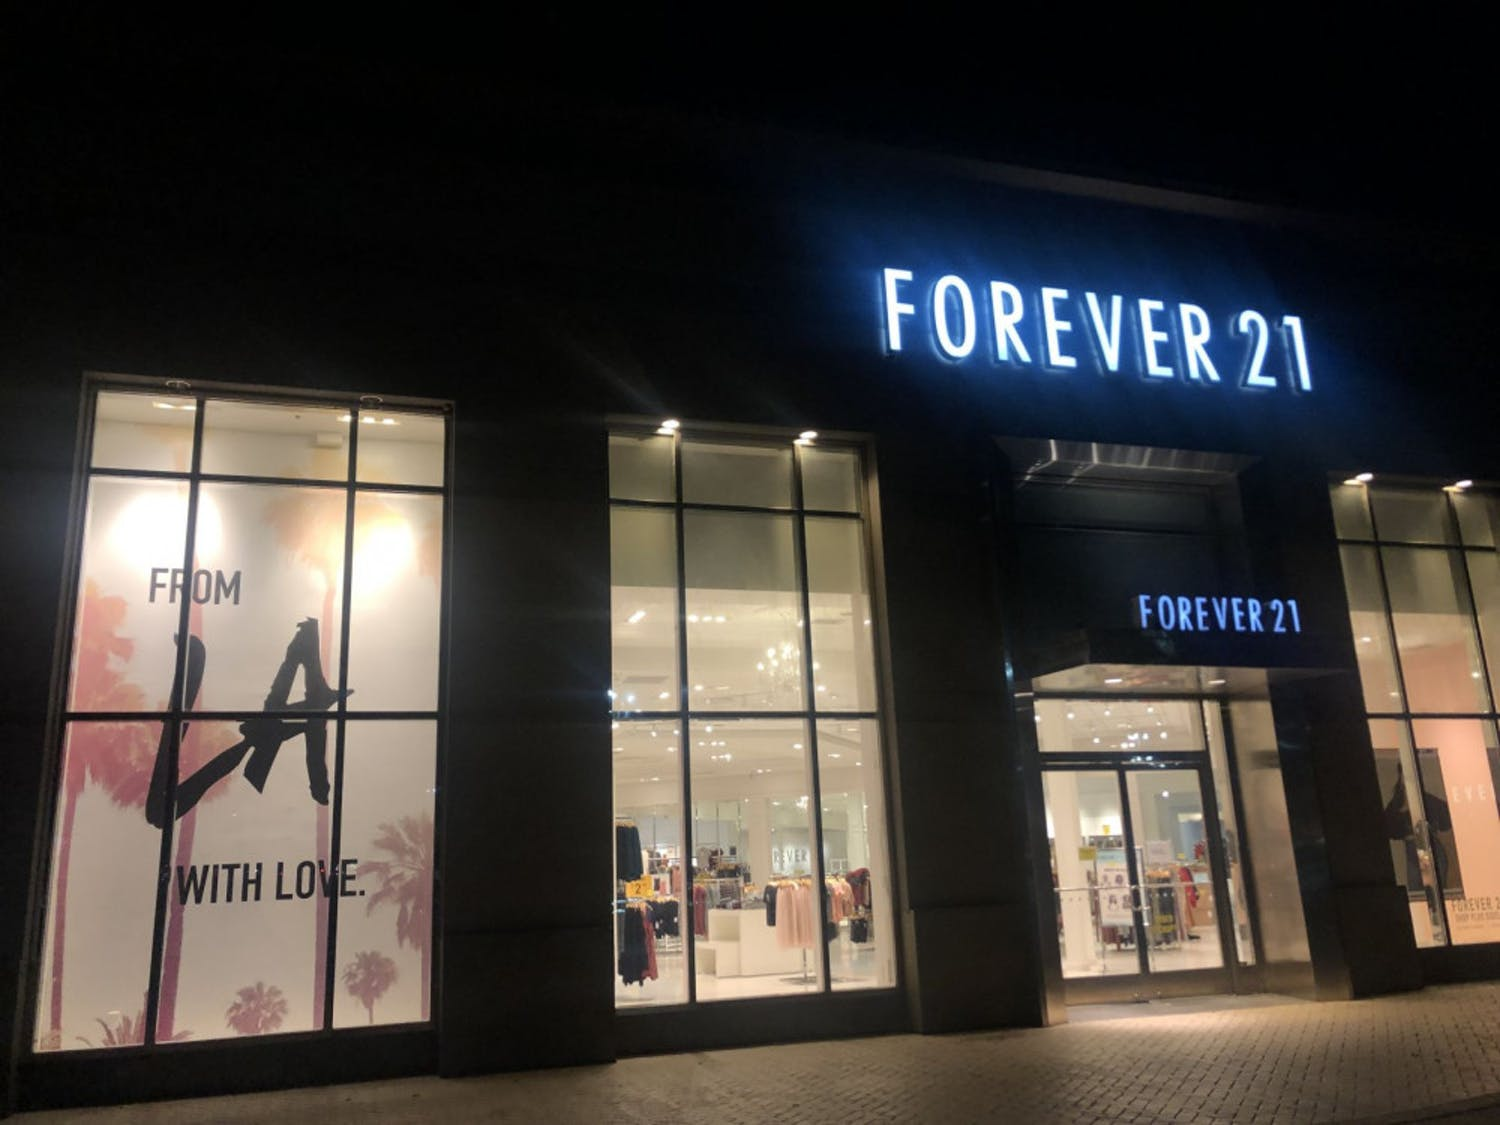 The Oaks Mall Forever 21, which will be staying open despite the company's recent bankruptcy.